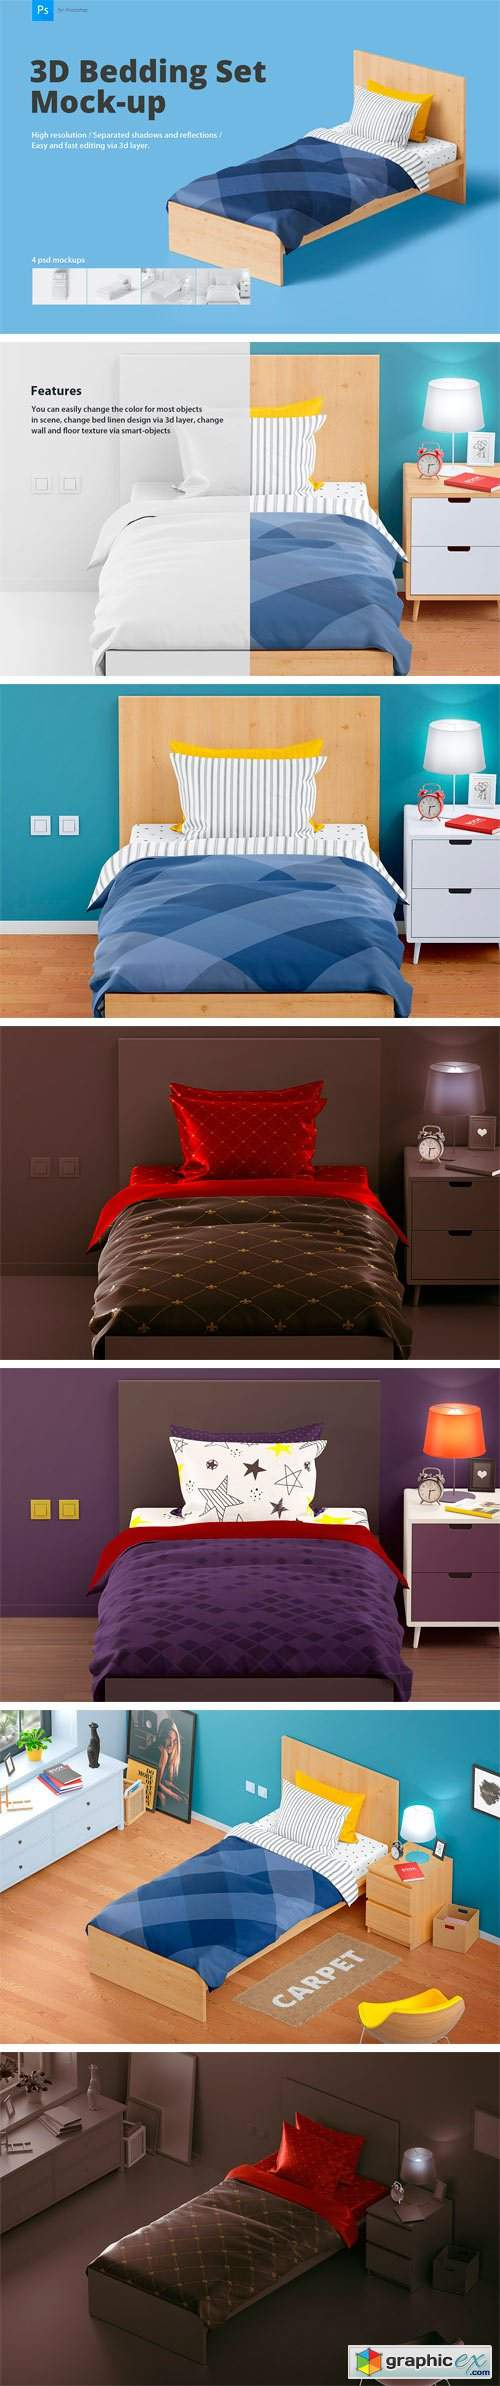 Bedding Set Mockup | Single Bed